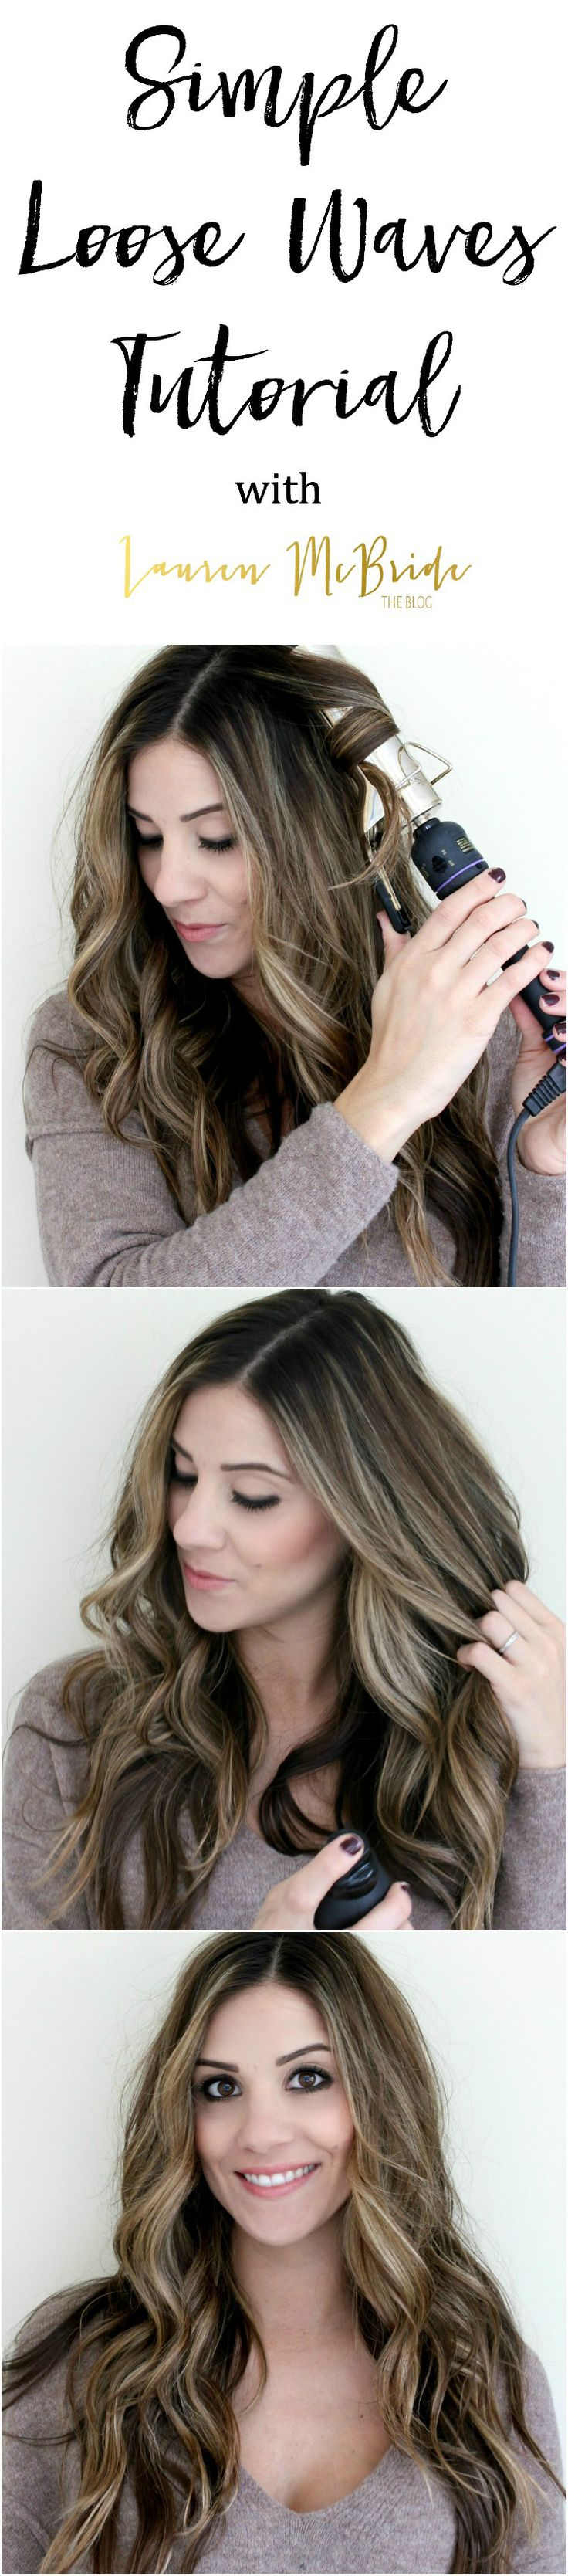 Simple Loose Waves Tutorial with @livingproofinc #ad #YourBestHair